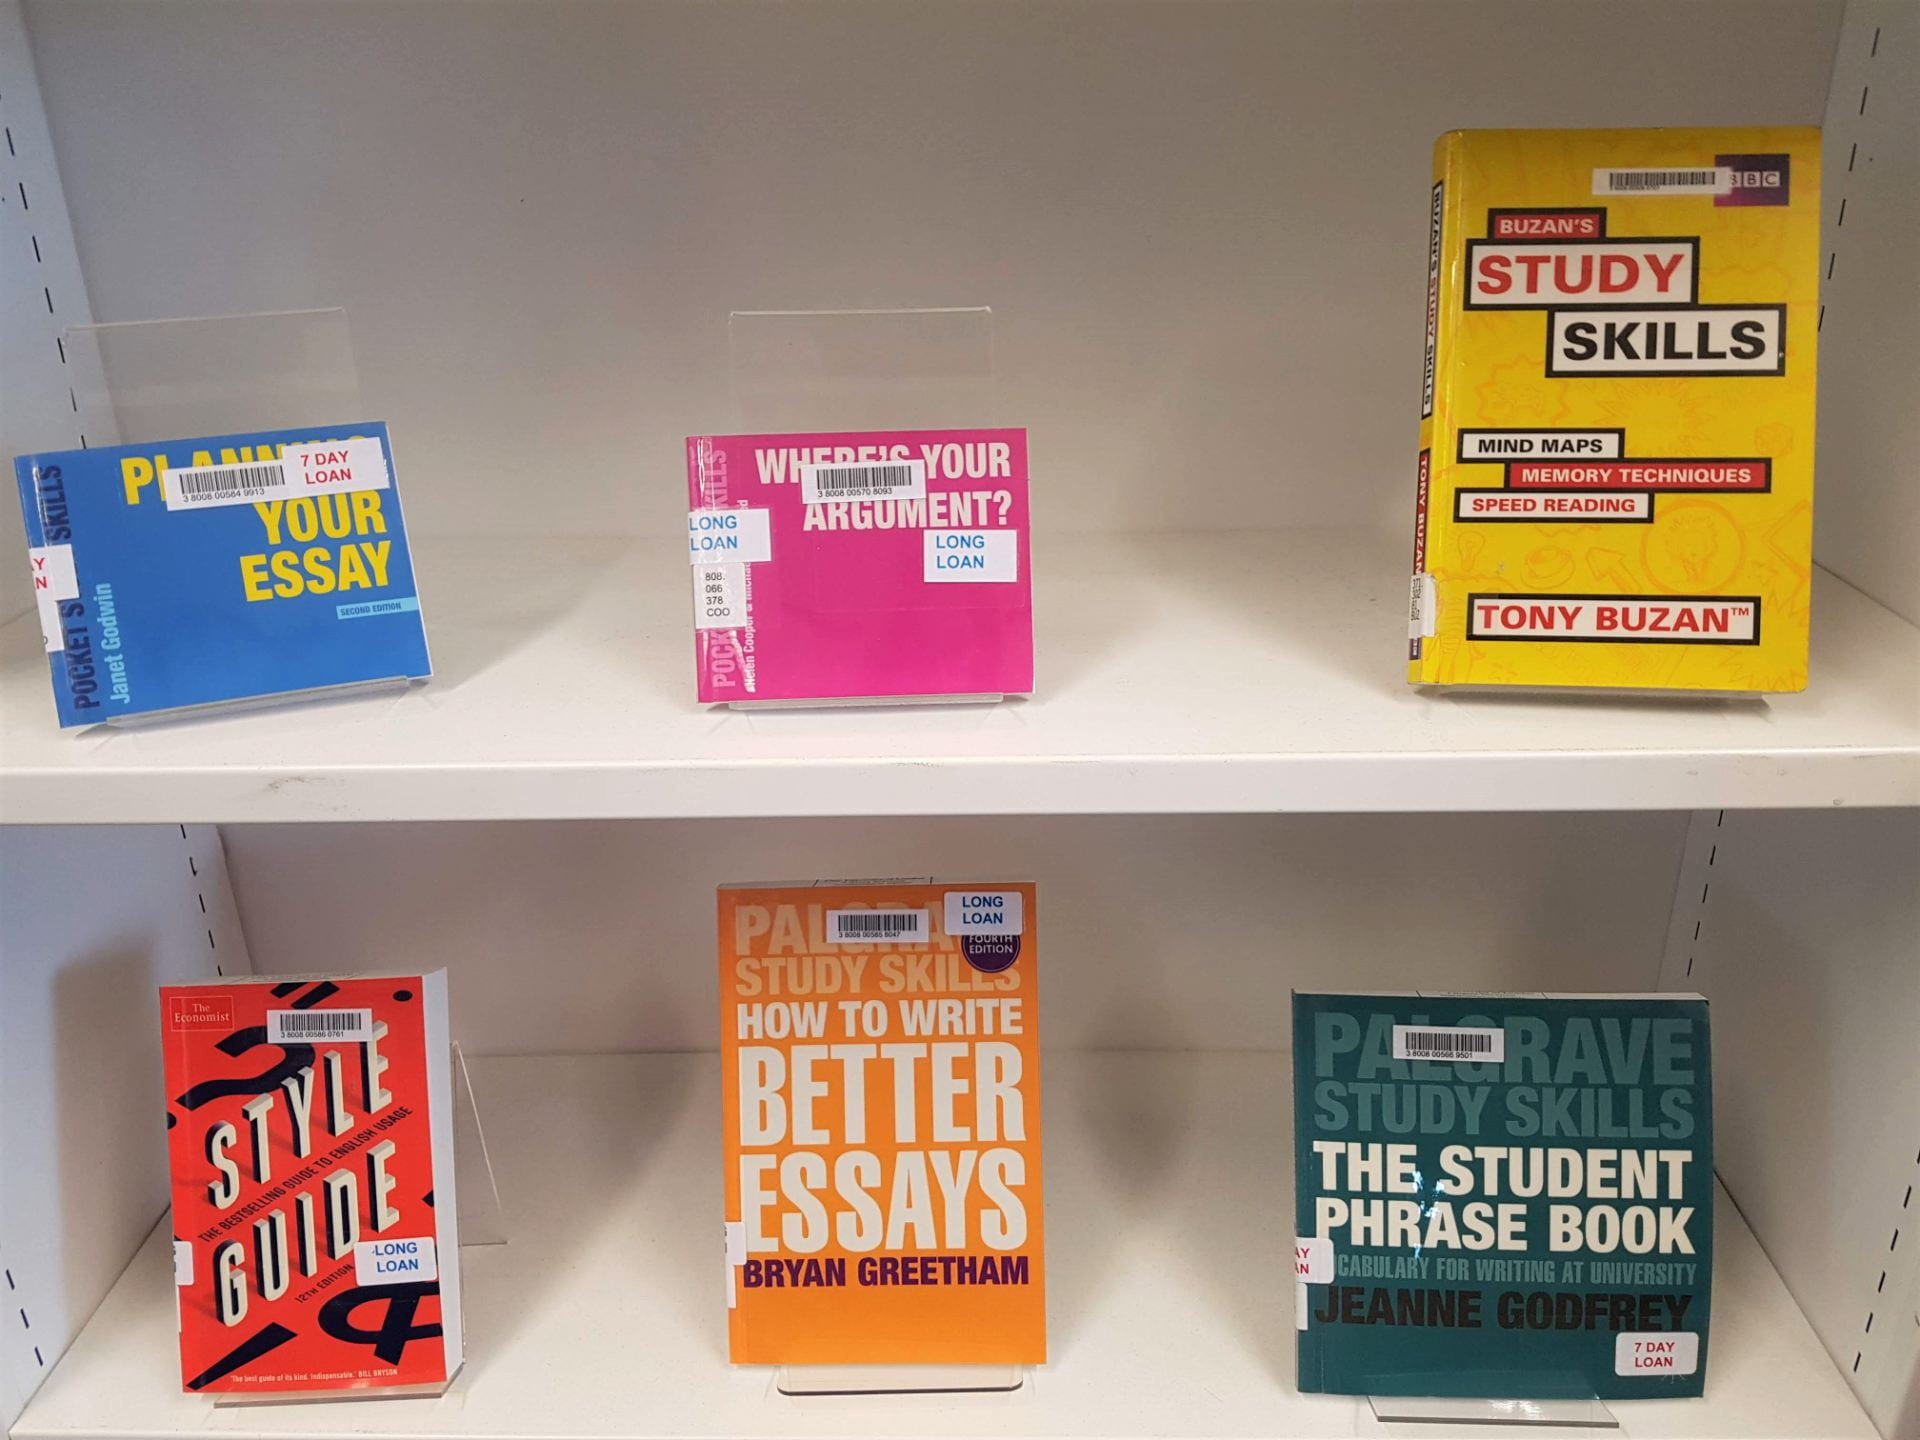 Books about study skills, on display shelves.